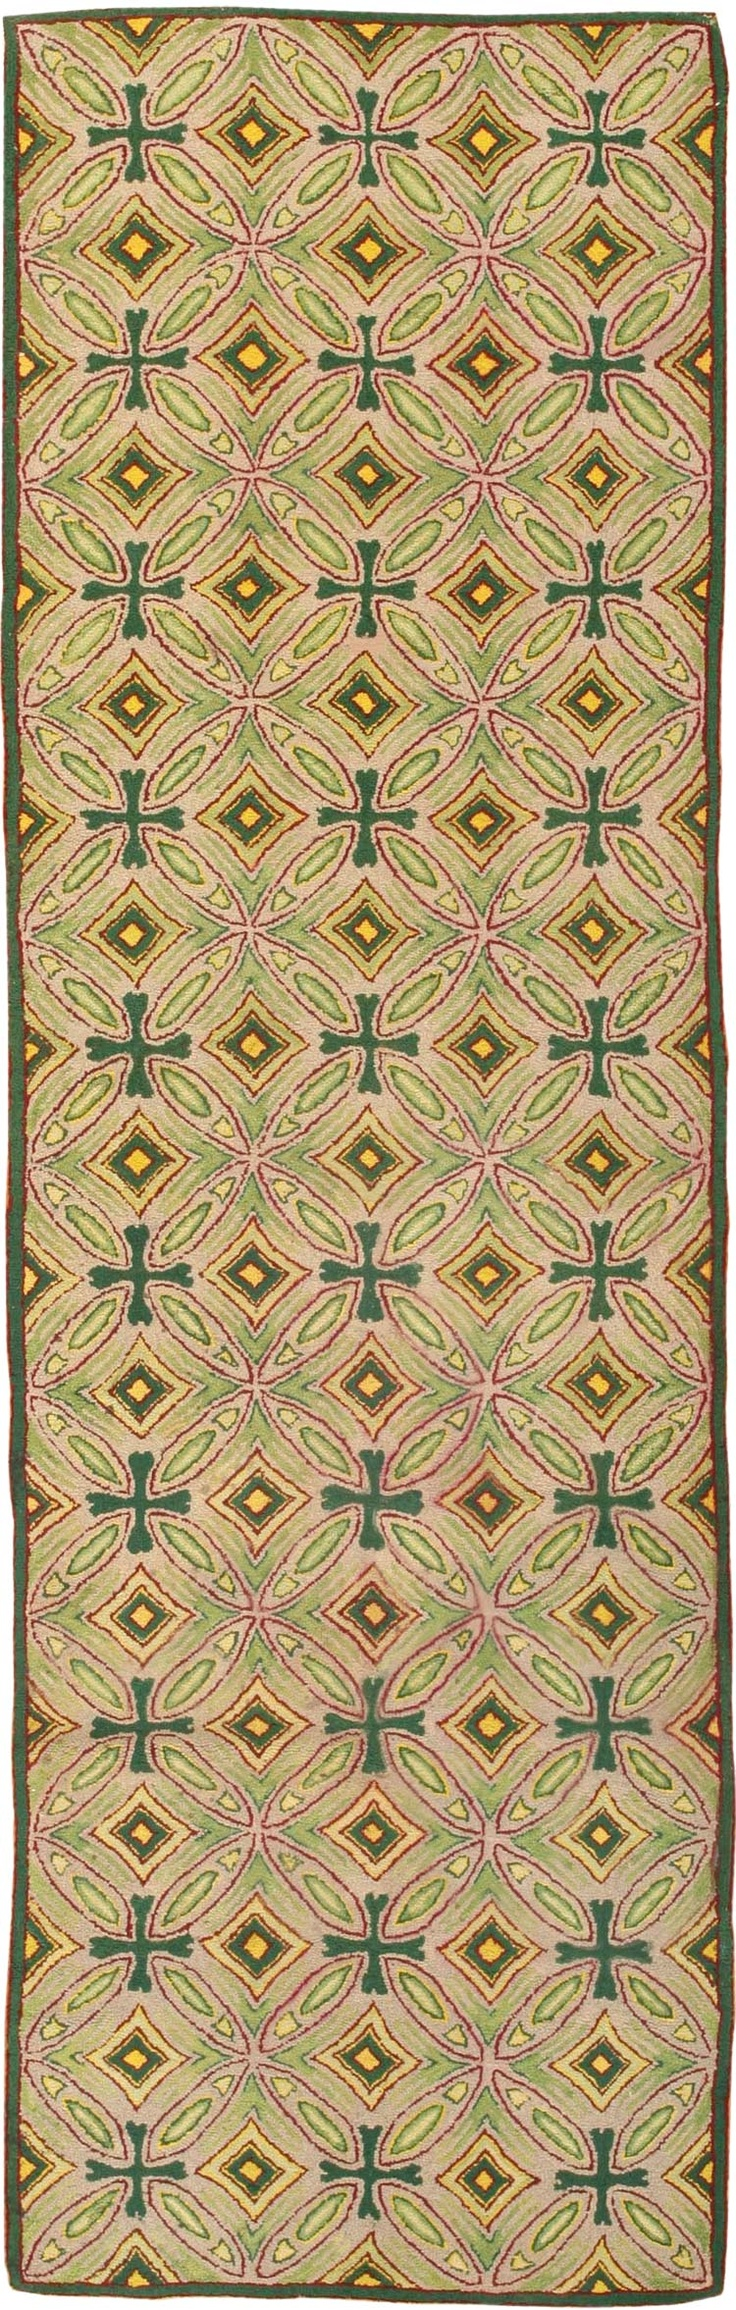 Antique Hooked American Rug 1928 Main Image - By Nazmiyal  Just perfect for Arts and Crafts style home!